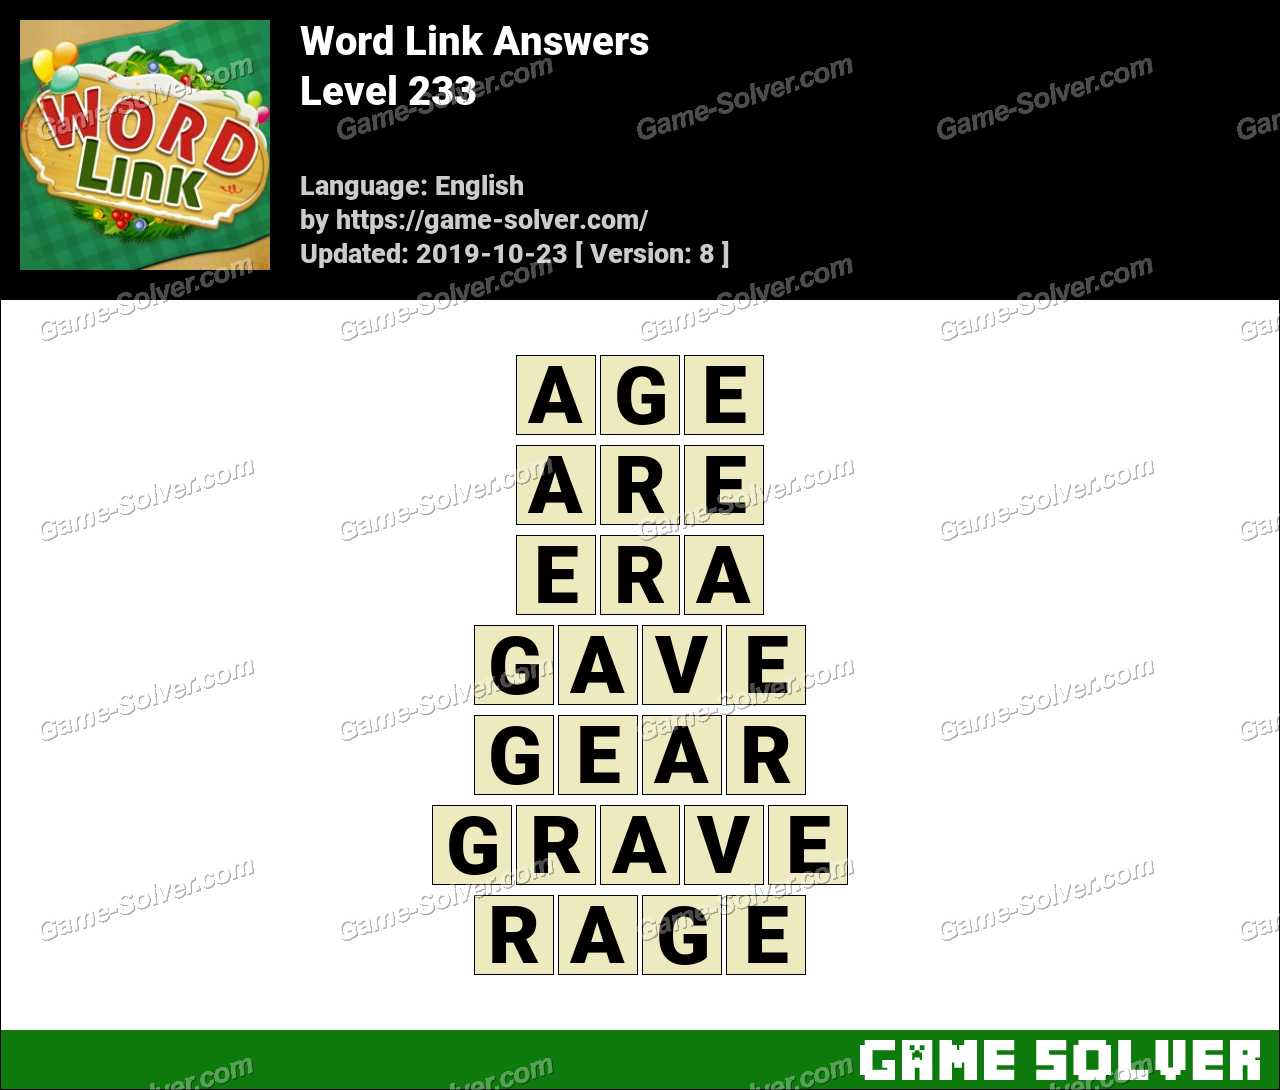 Word Link Level 233 Answers